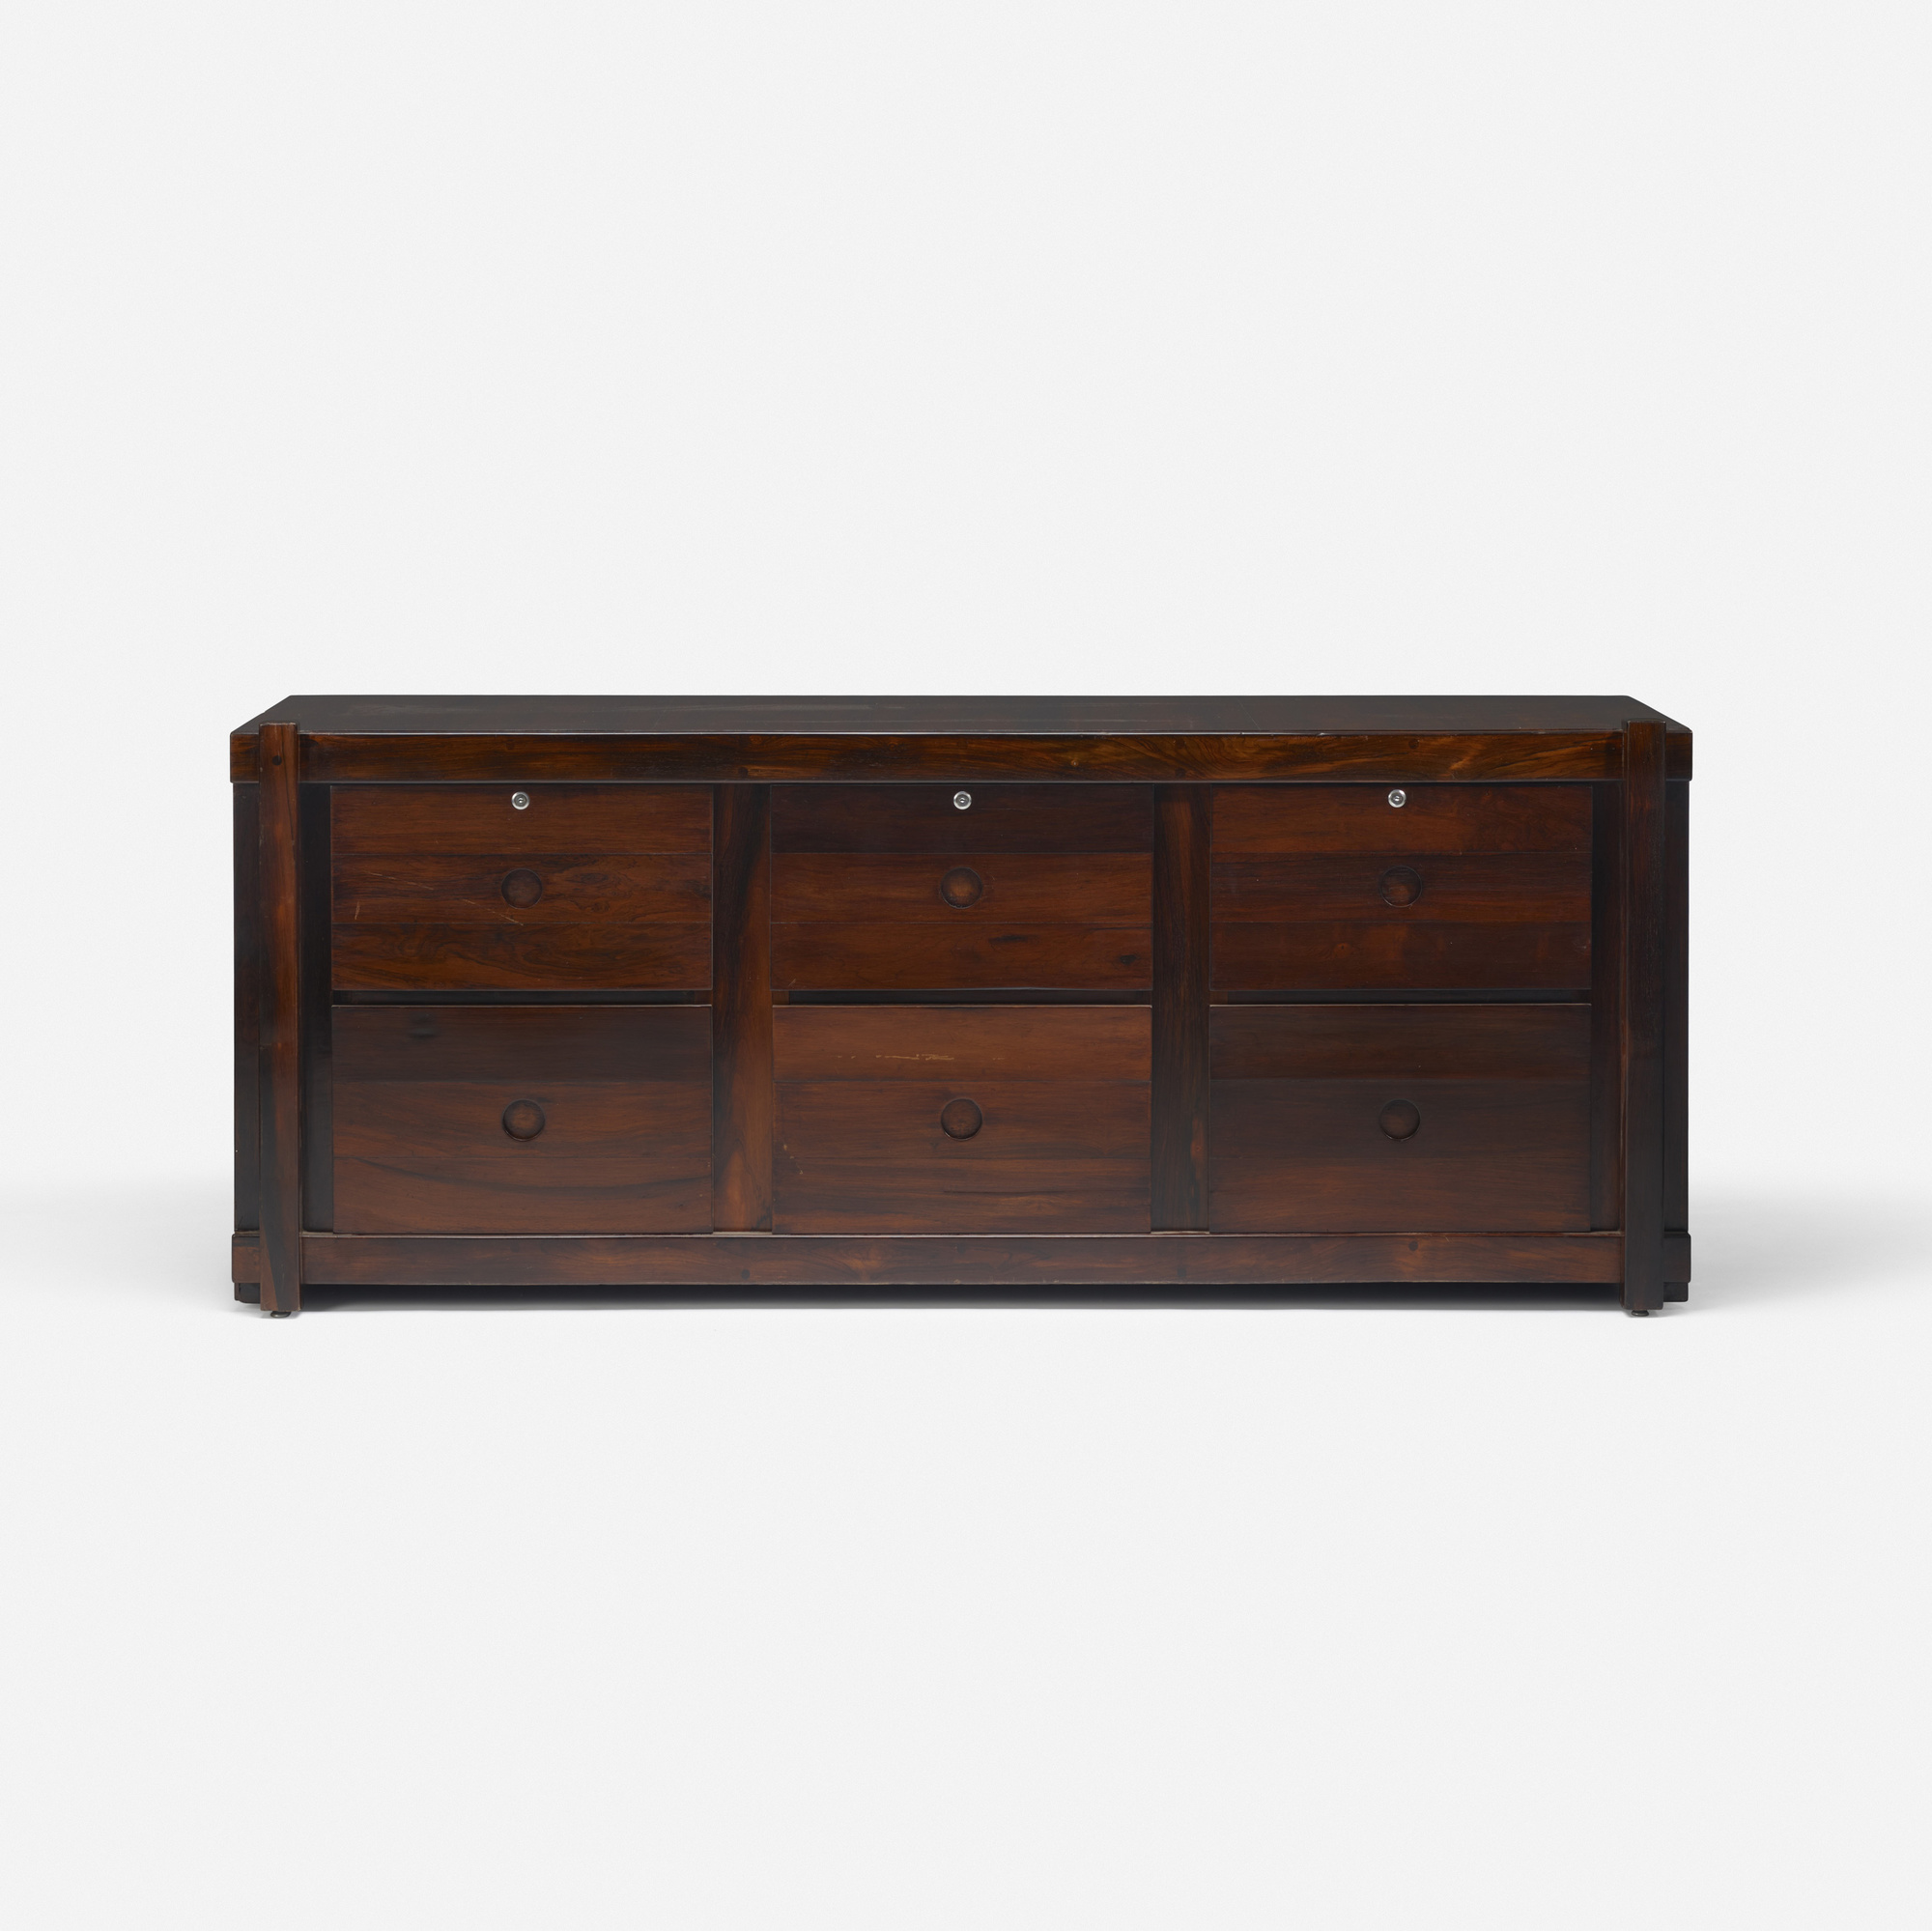 180: Sergio Rodrigues / cabinet (2 of 3)